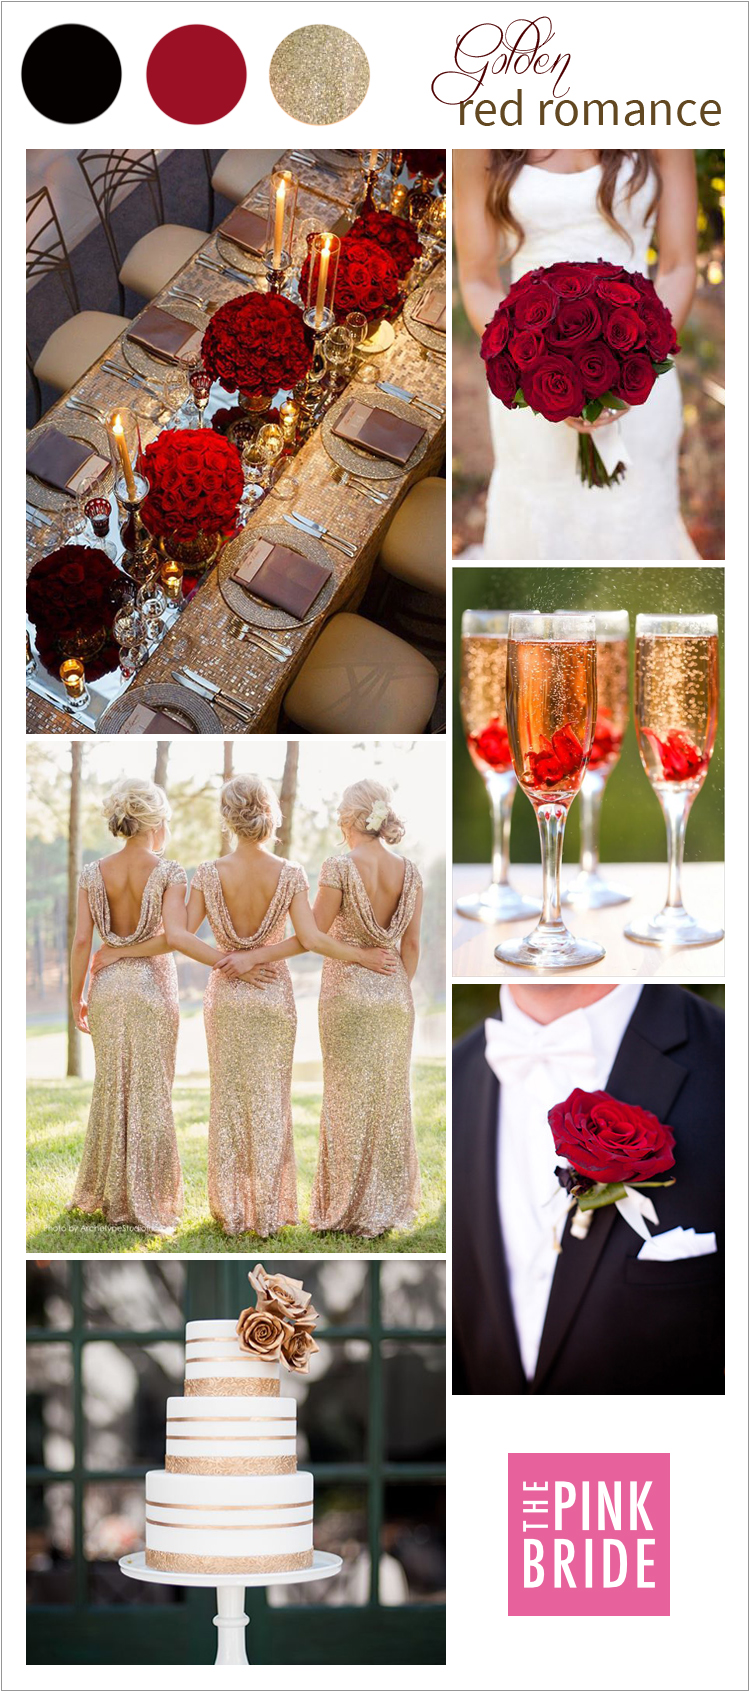 Wedding Color Board Golden Red Romance The Pink Bride